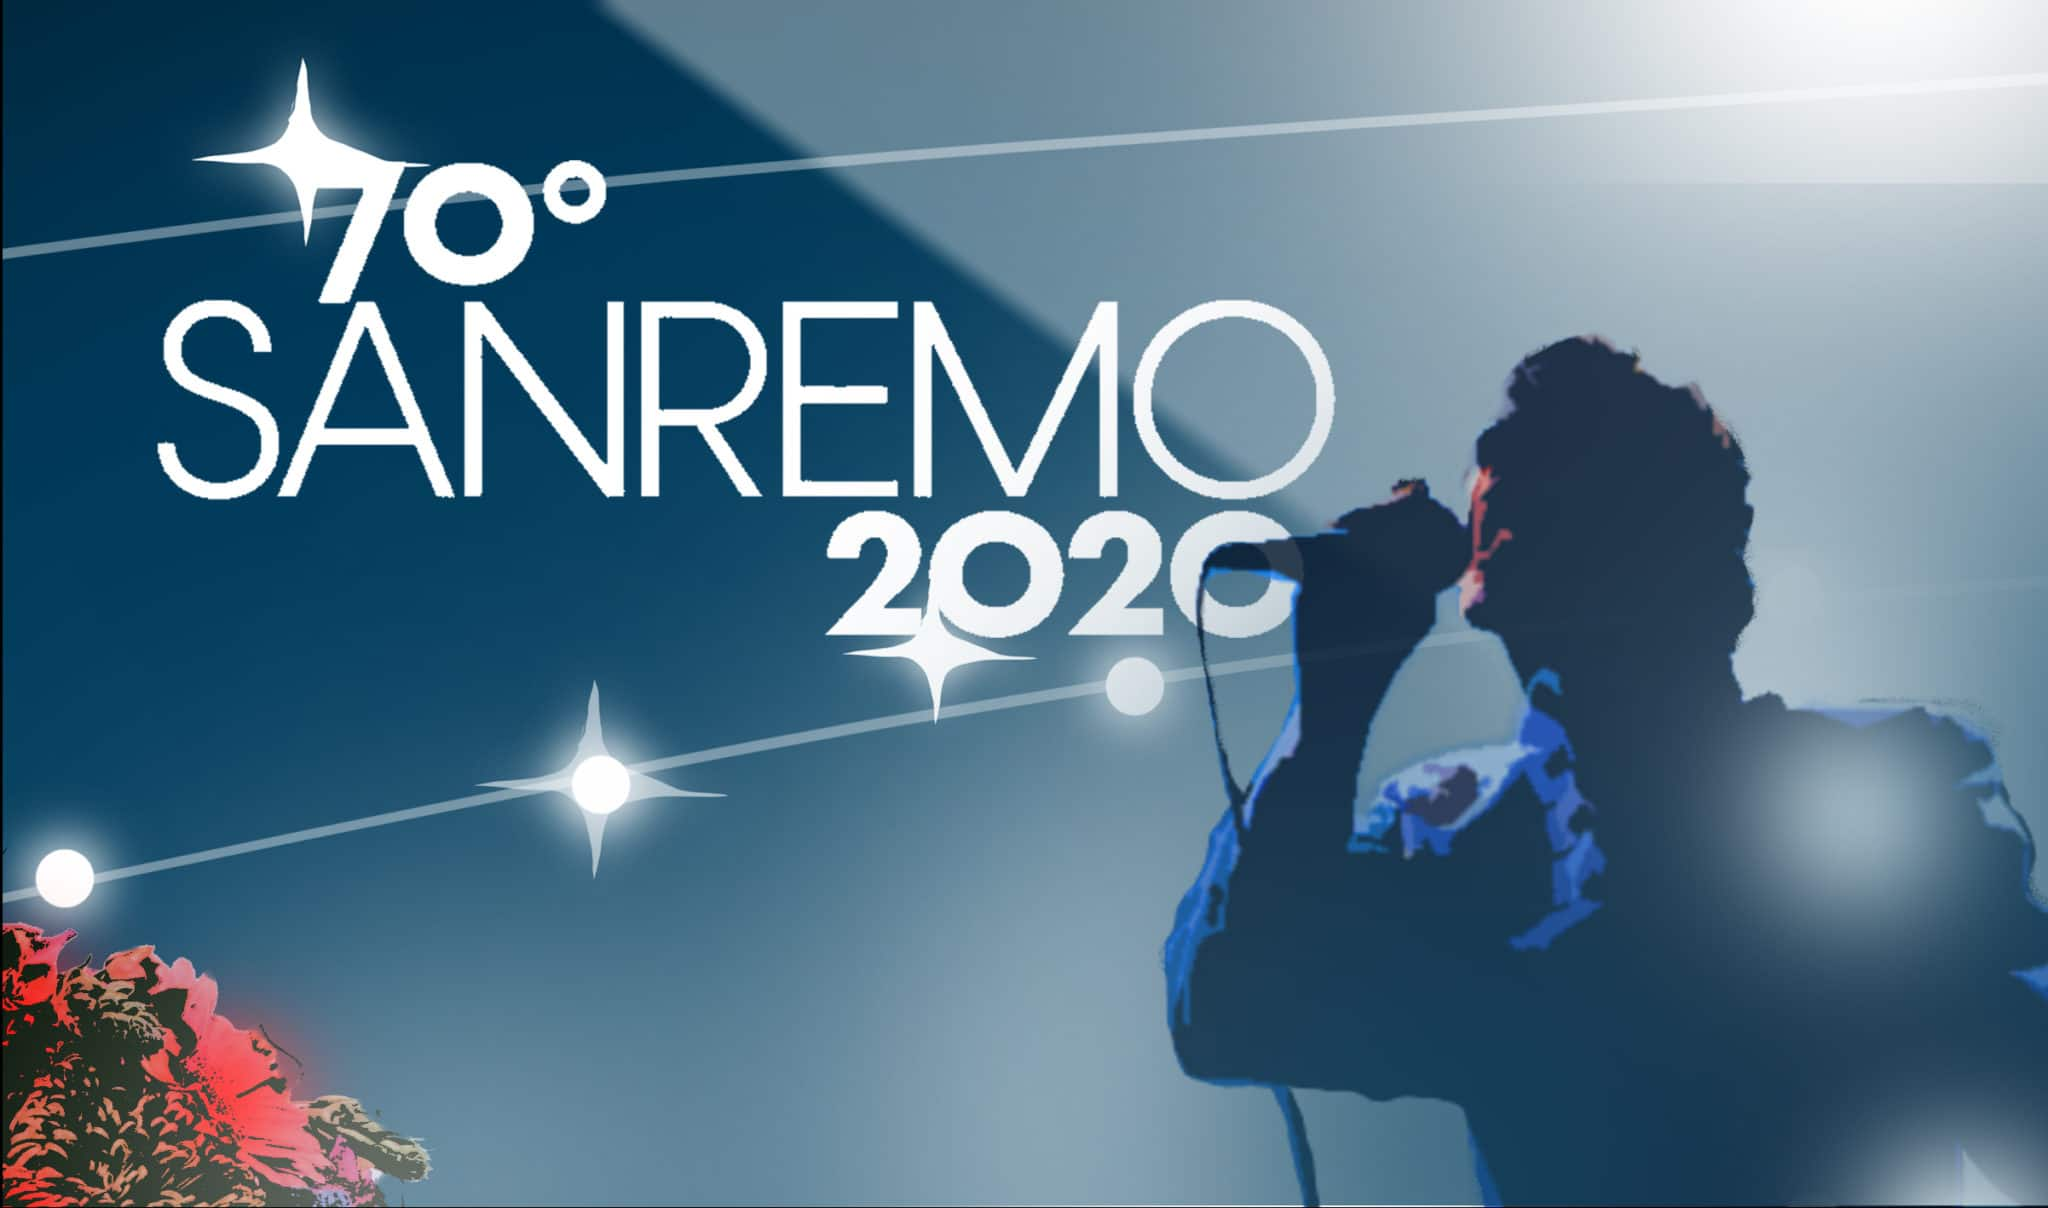 classifica-provvisoria-sanremo-2020